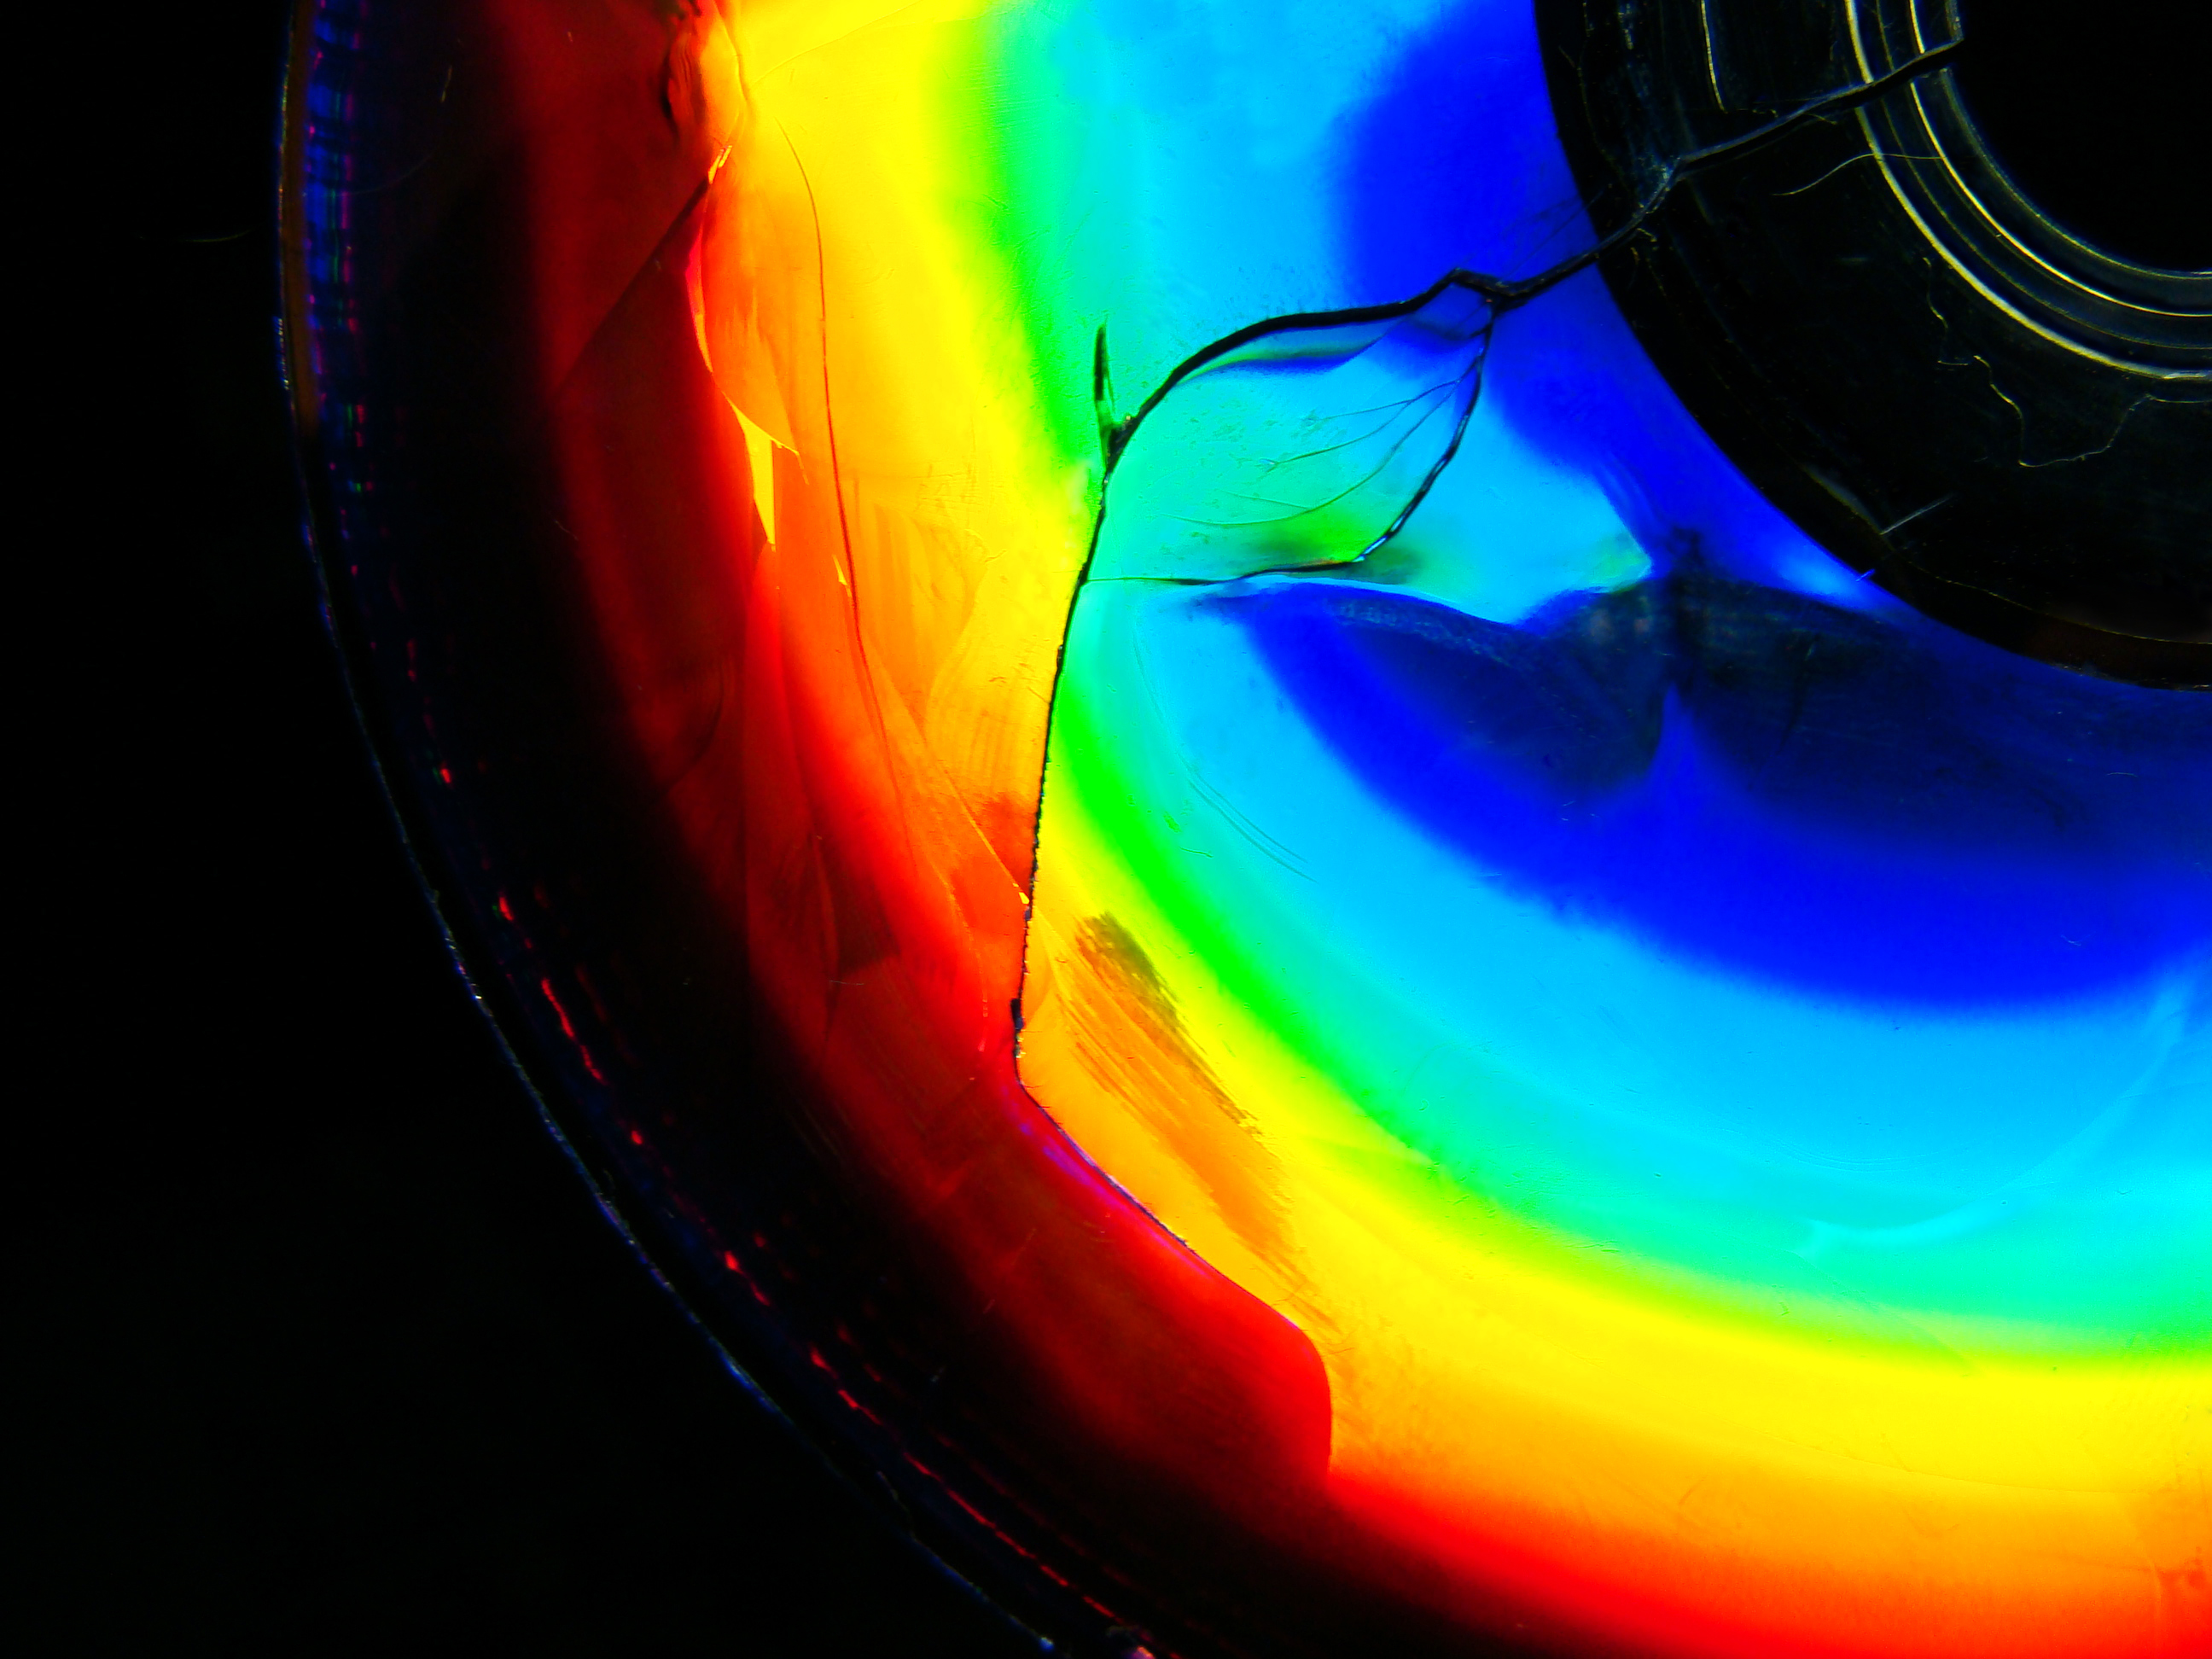 Cracked Cd 1024x768 Using Color To Emphasize Your Subject